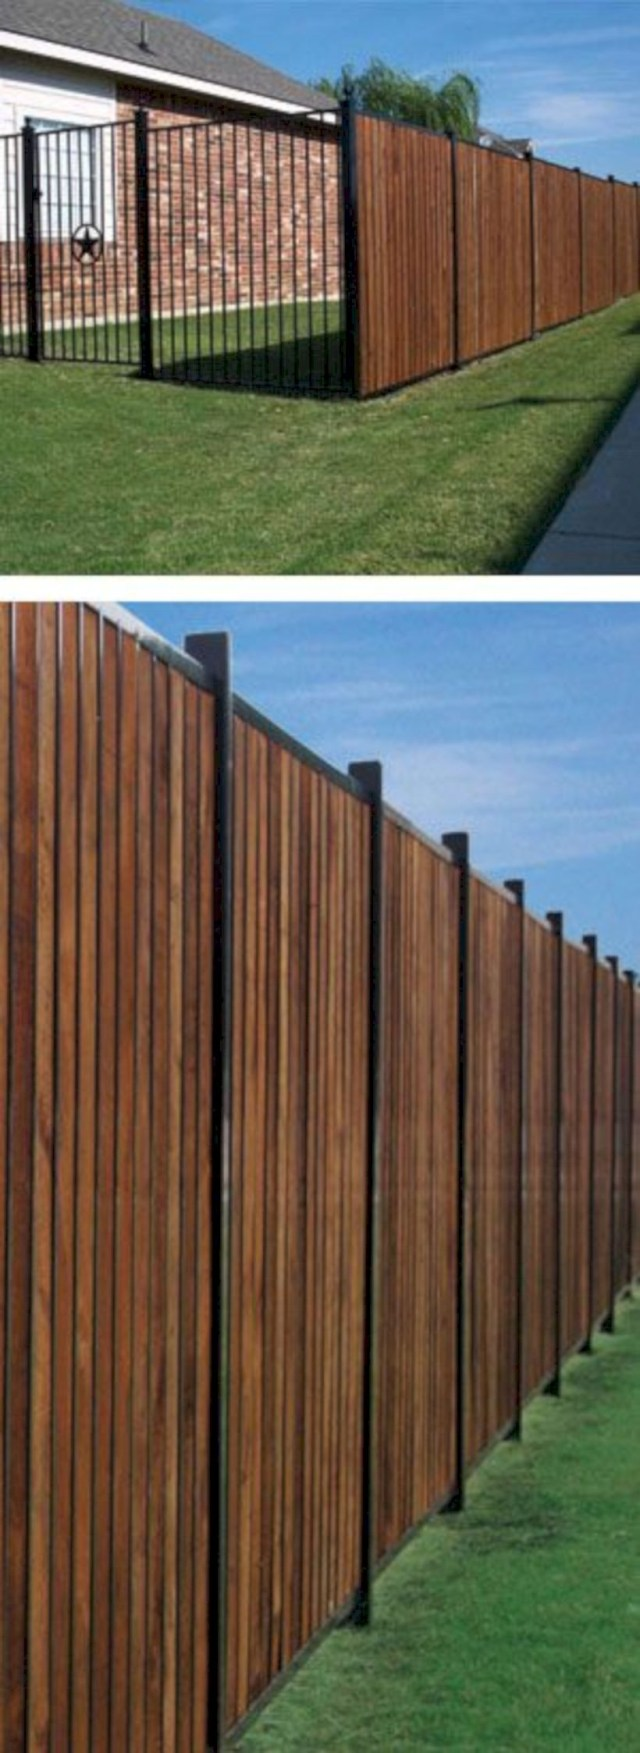 Wood fence design with iron